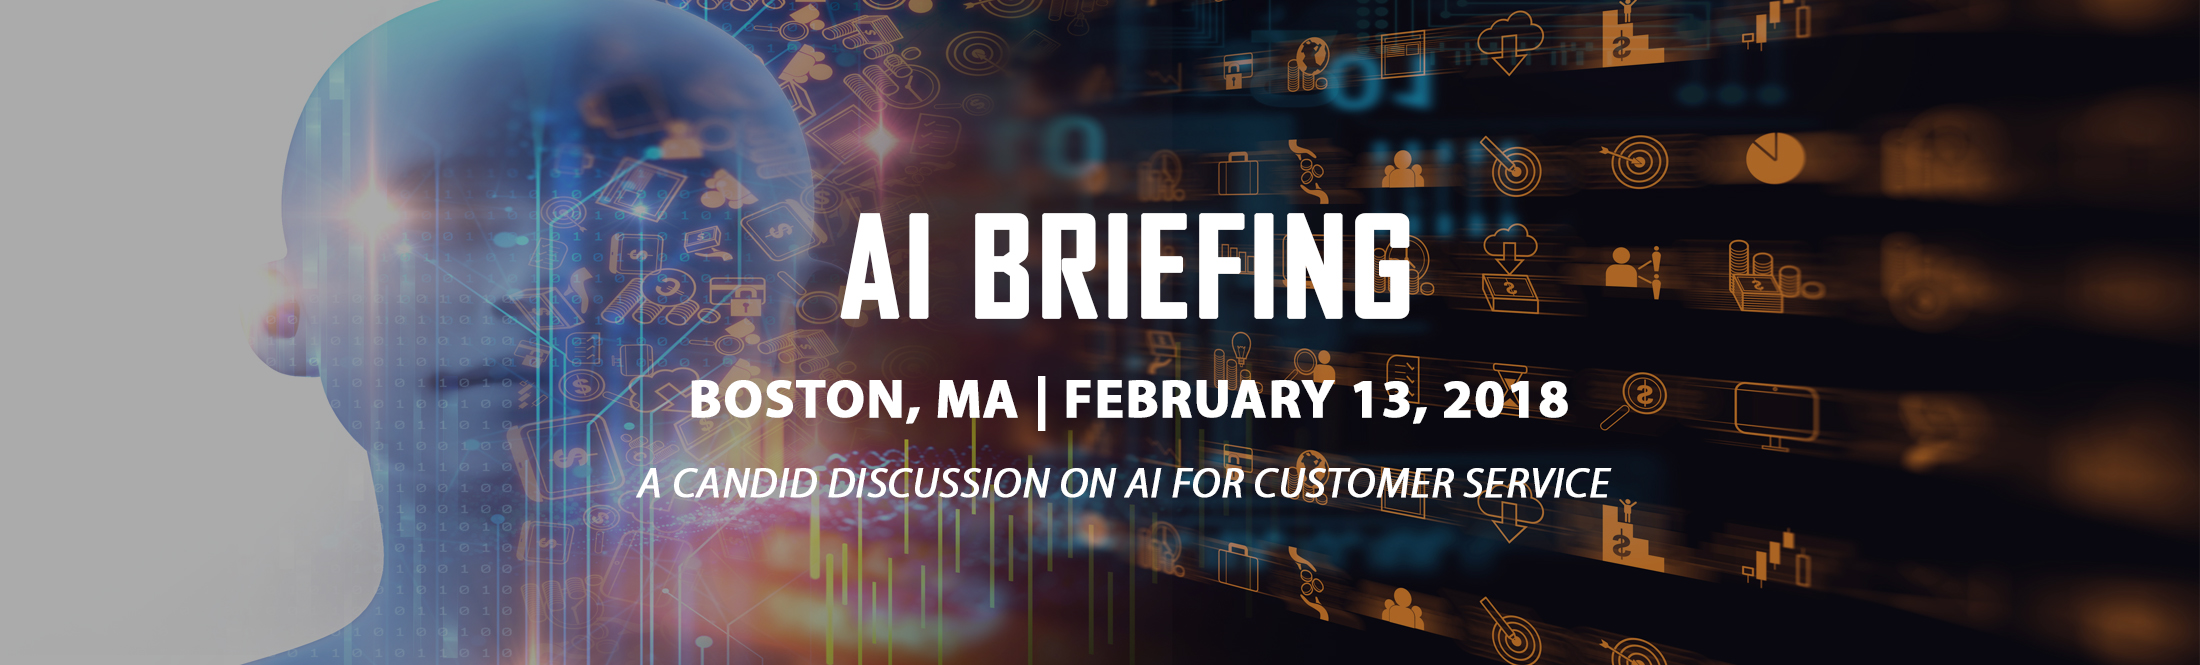 AI Briefing - Boston